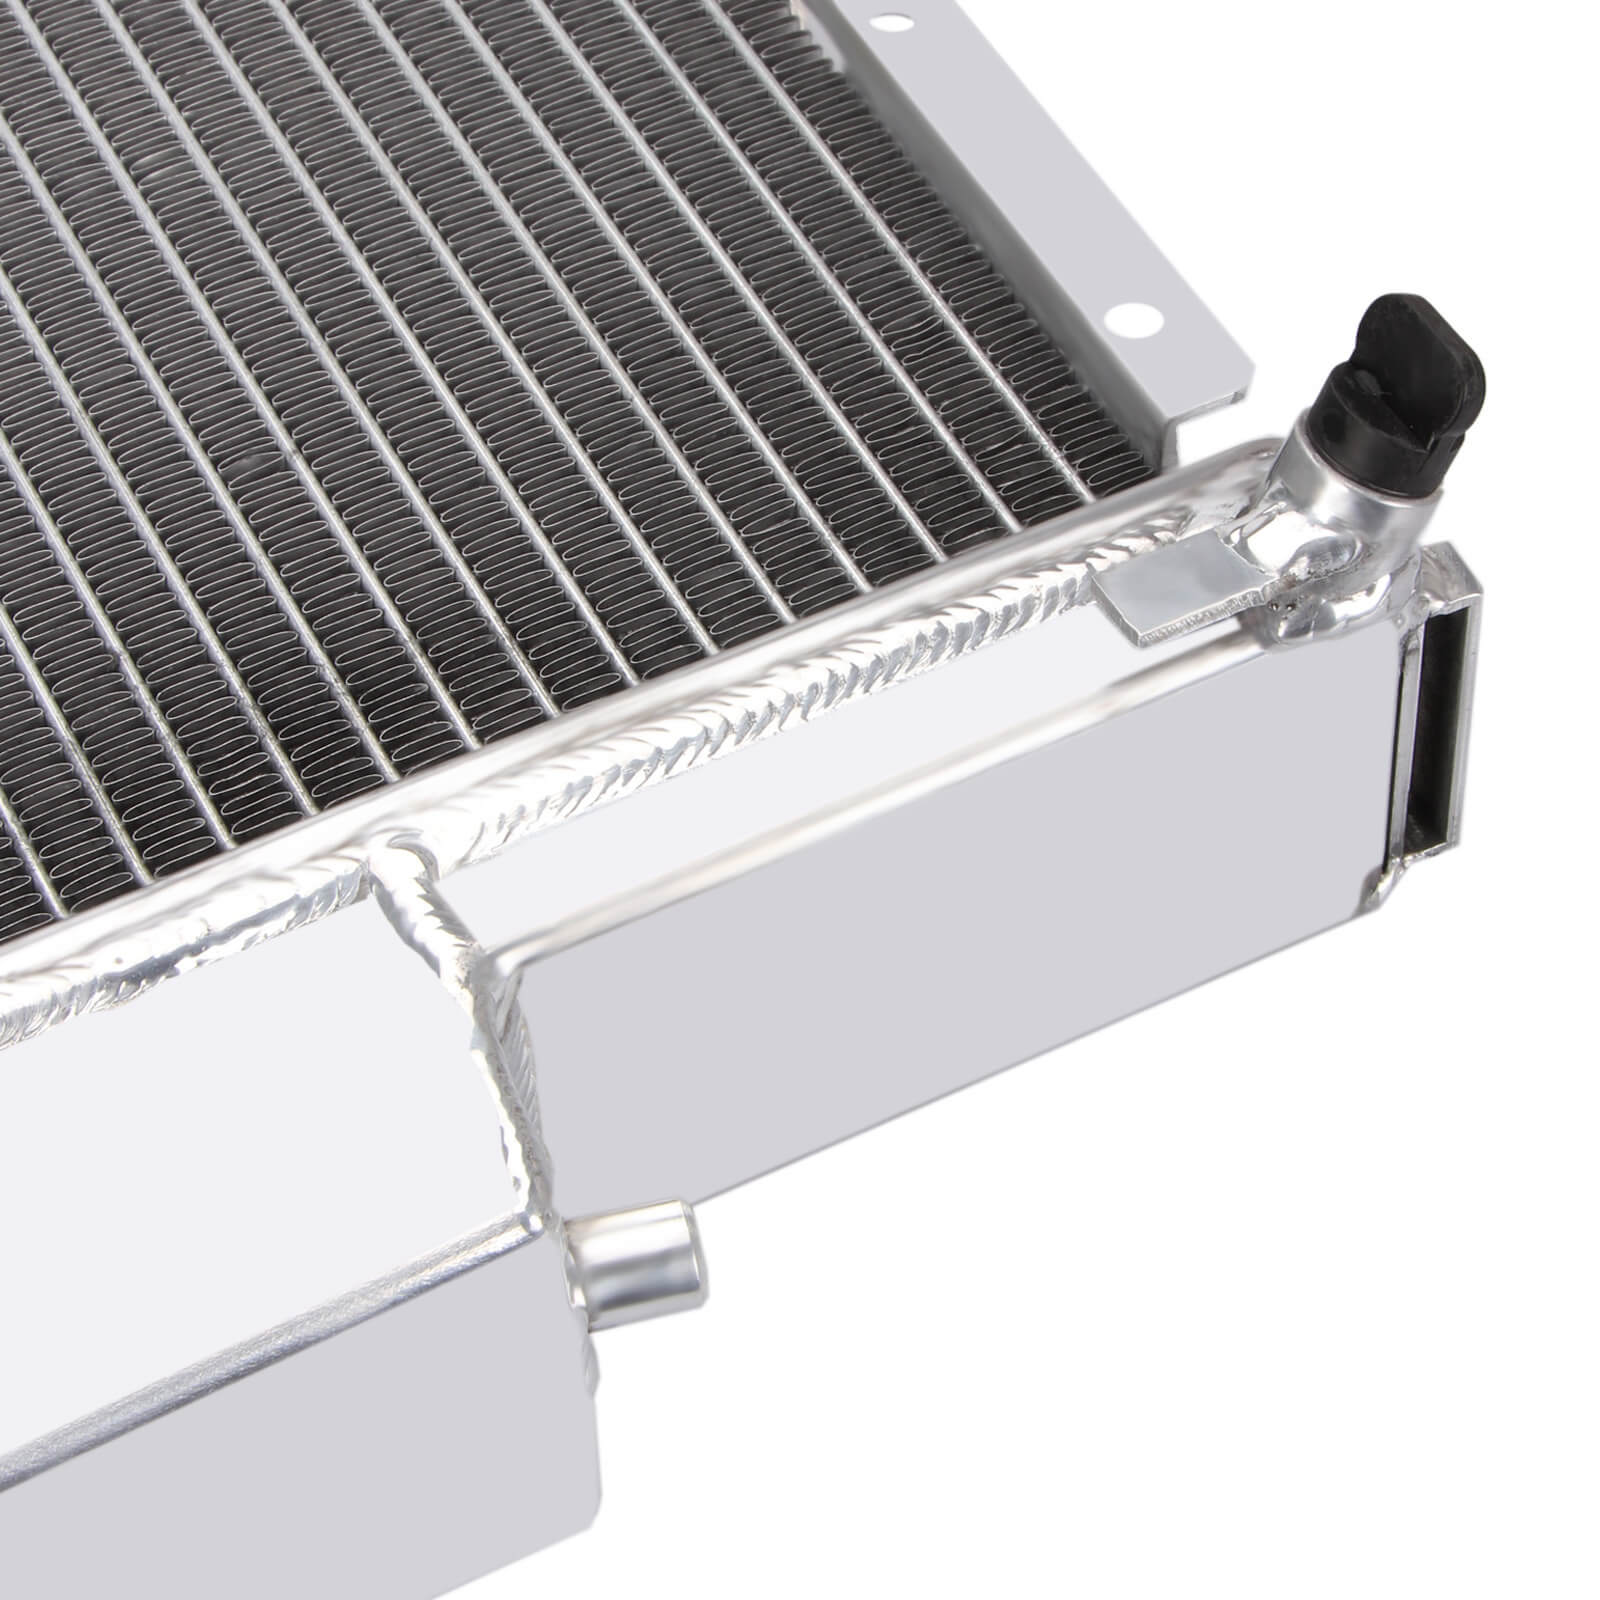 Dromedary-Best 1841 Full Aluminum Racing Radiator For Bmw M3 325 E32 1992-2000 Mt-6